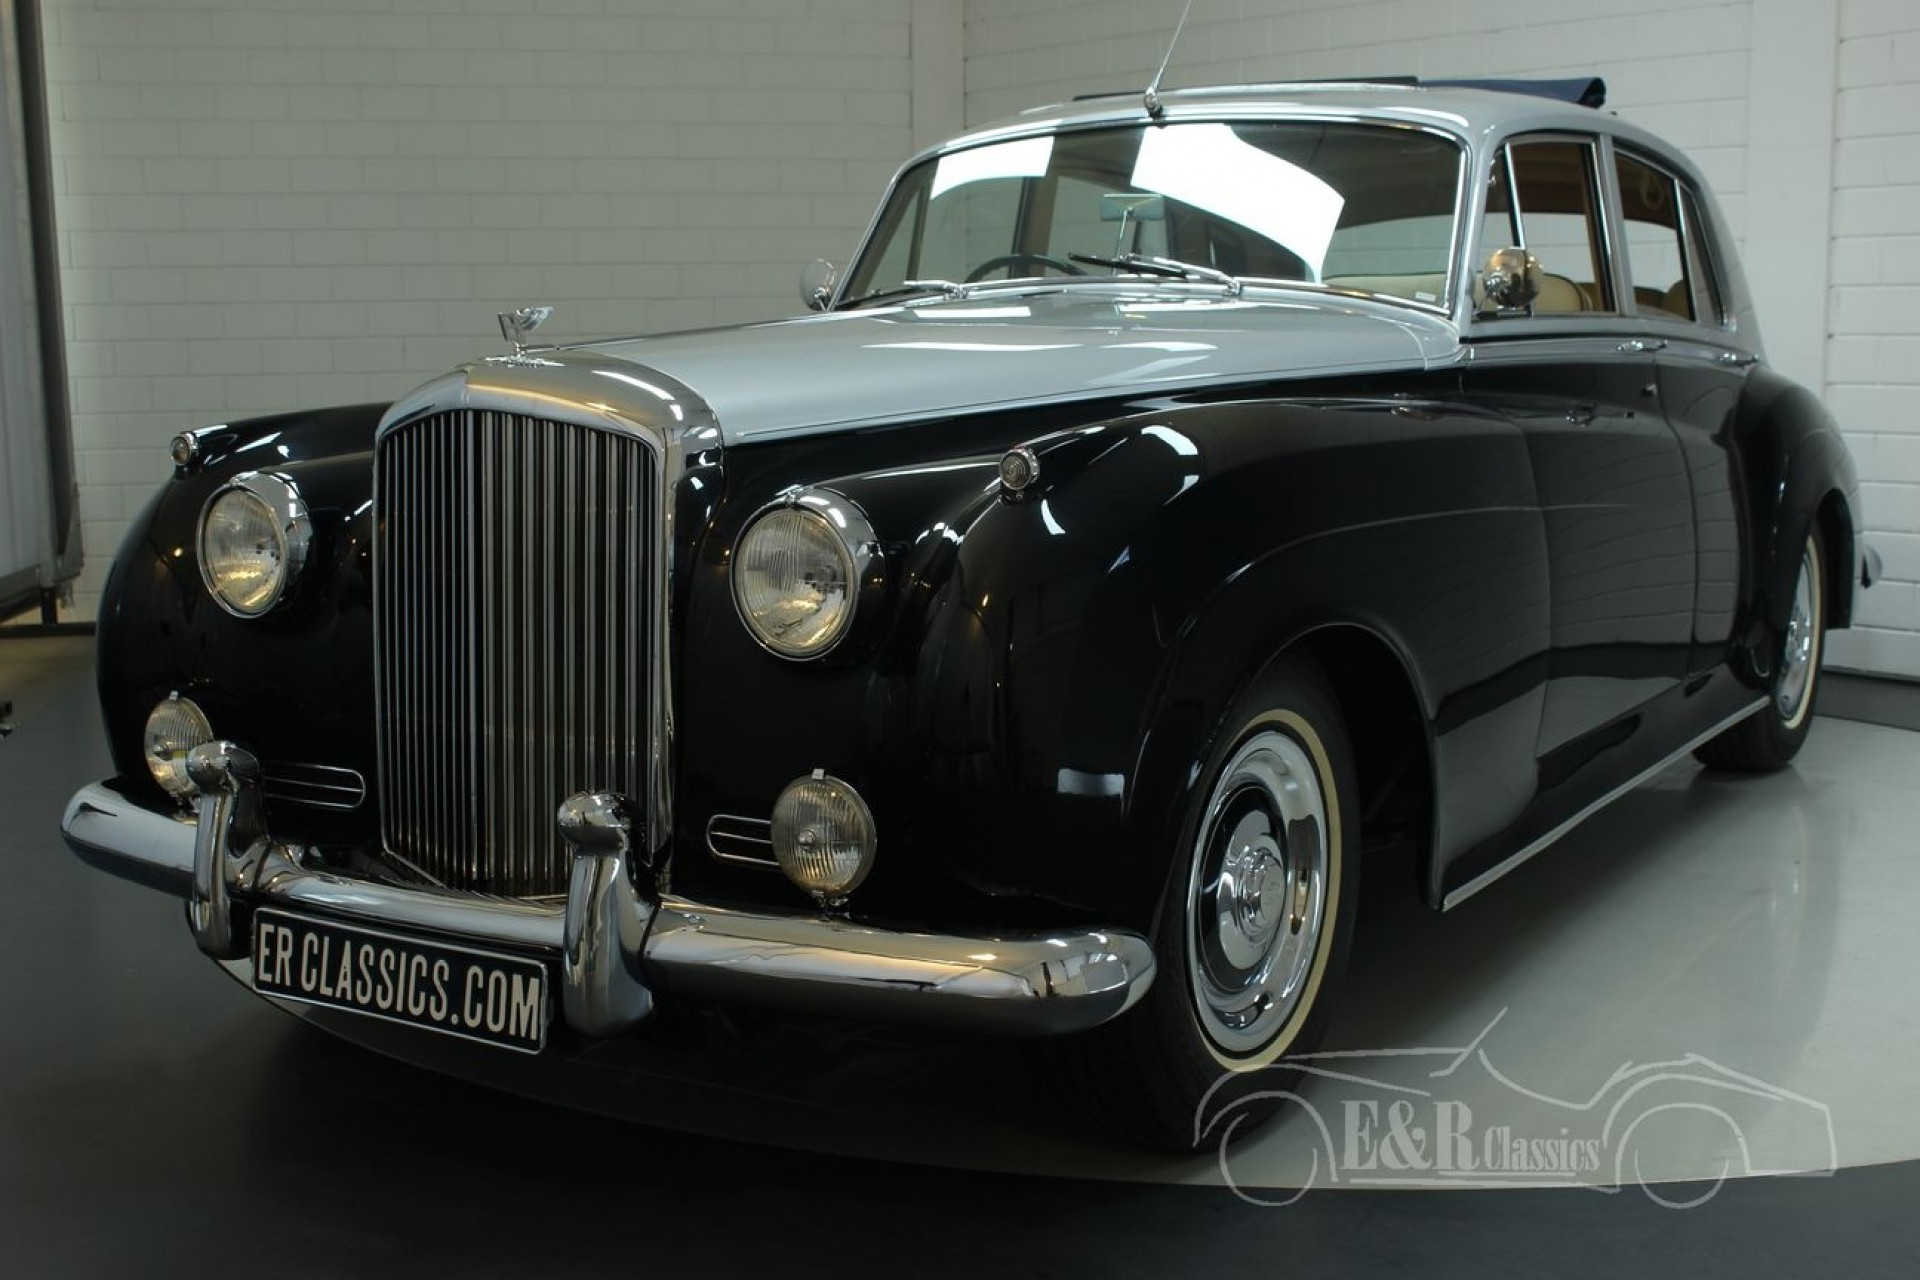 bentley s1 1956 te koop bij erclassics. Black Bedroom Furniture Sets. Home Design Ideas